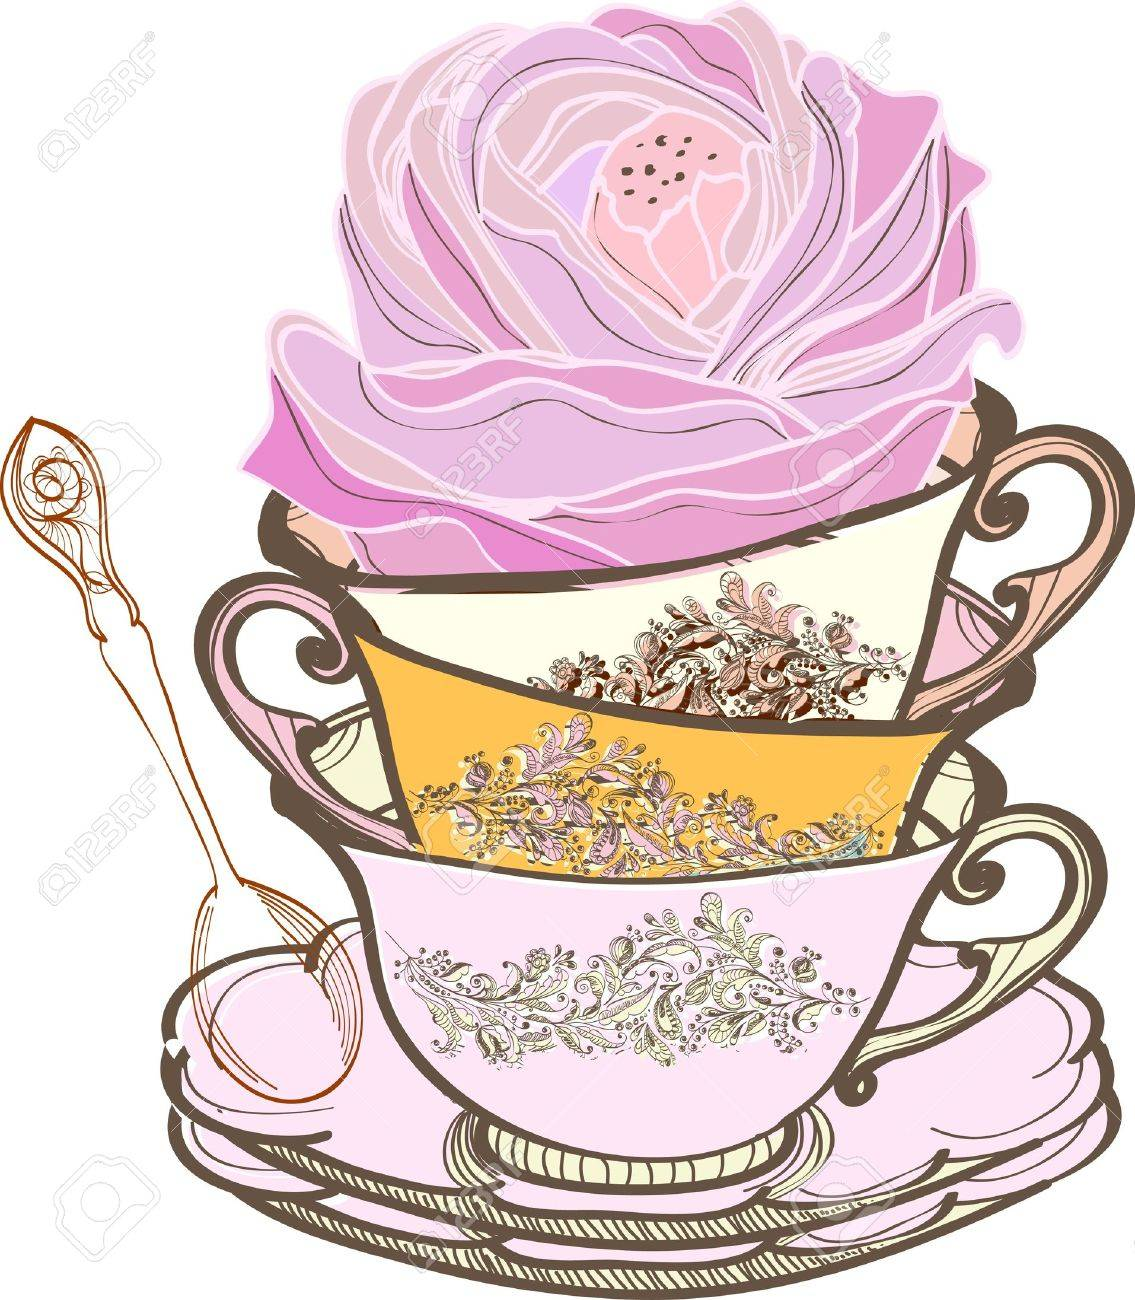 1,887 Afternoon Tea Party Stock Vector Illustration And Royalty ...